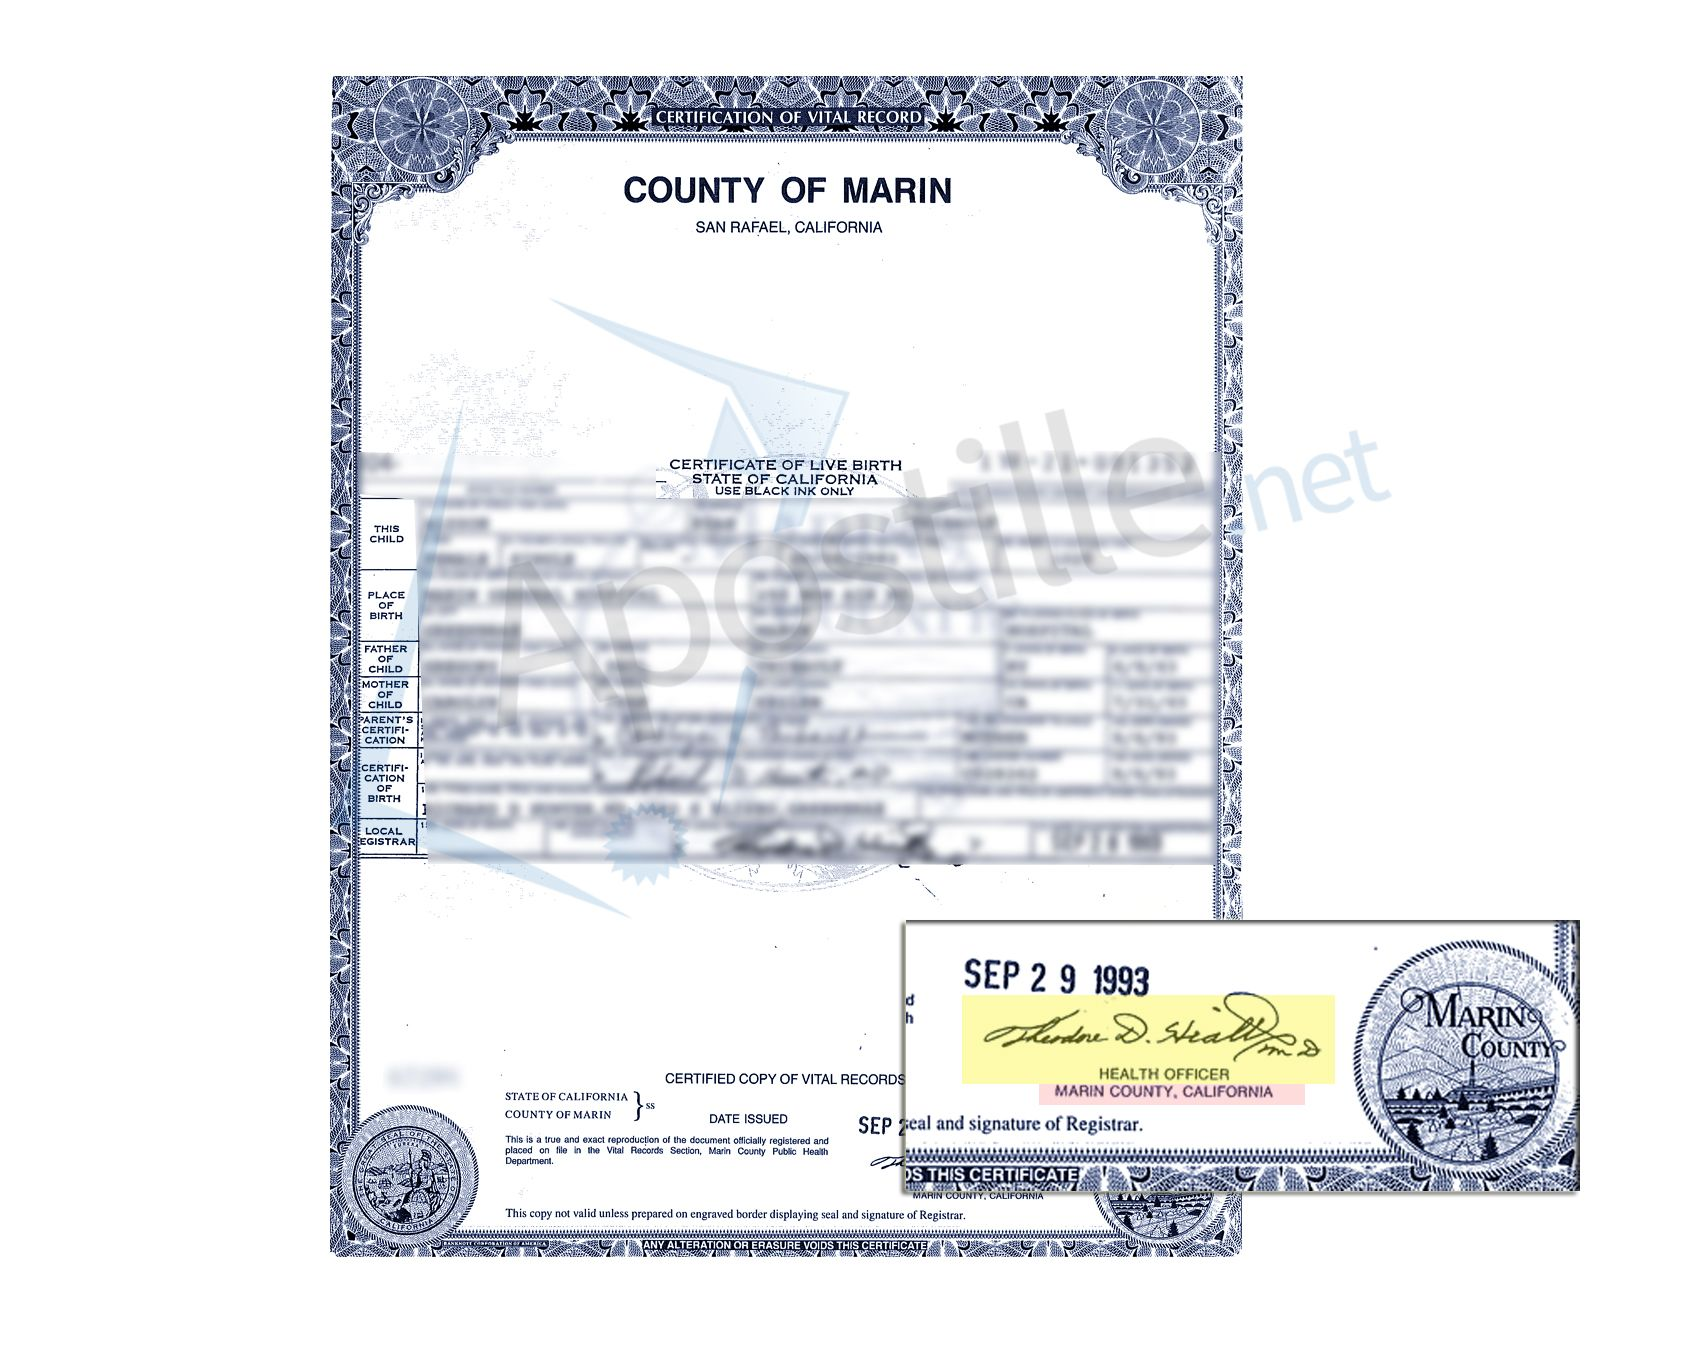 County of Marin Certificate of Birth ready for apostille